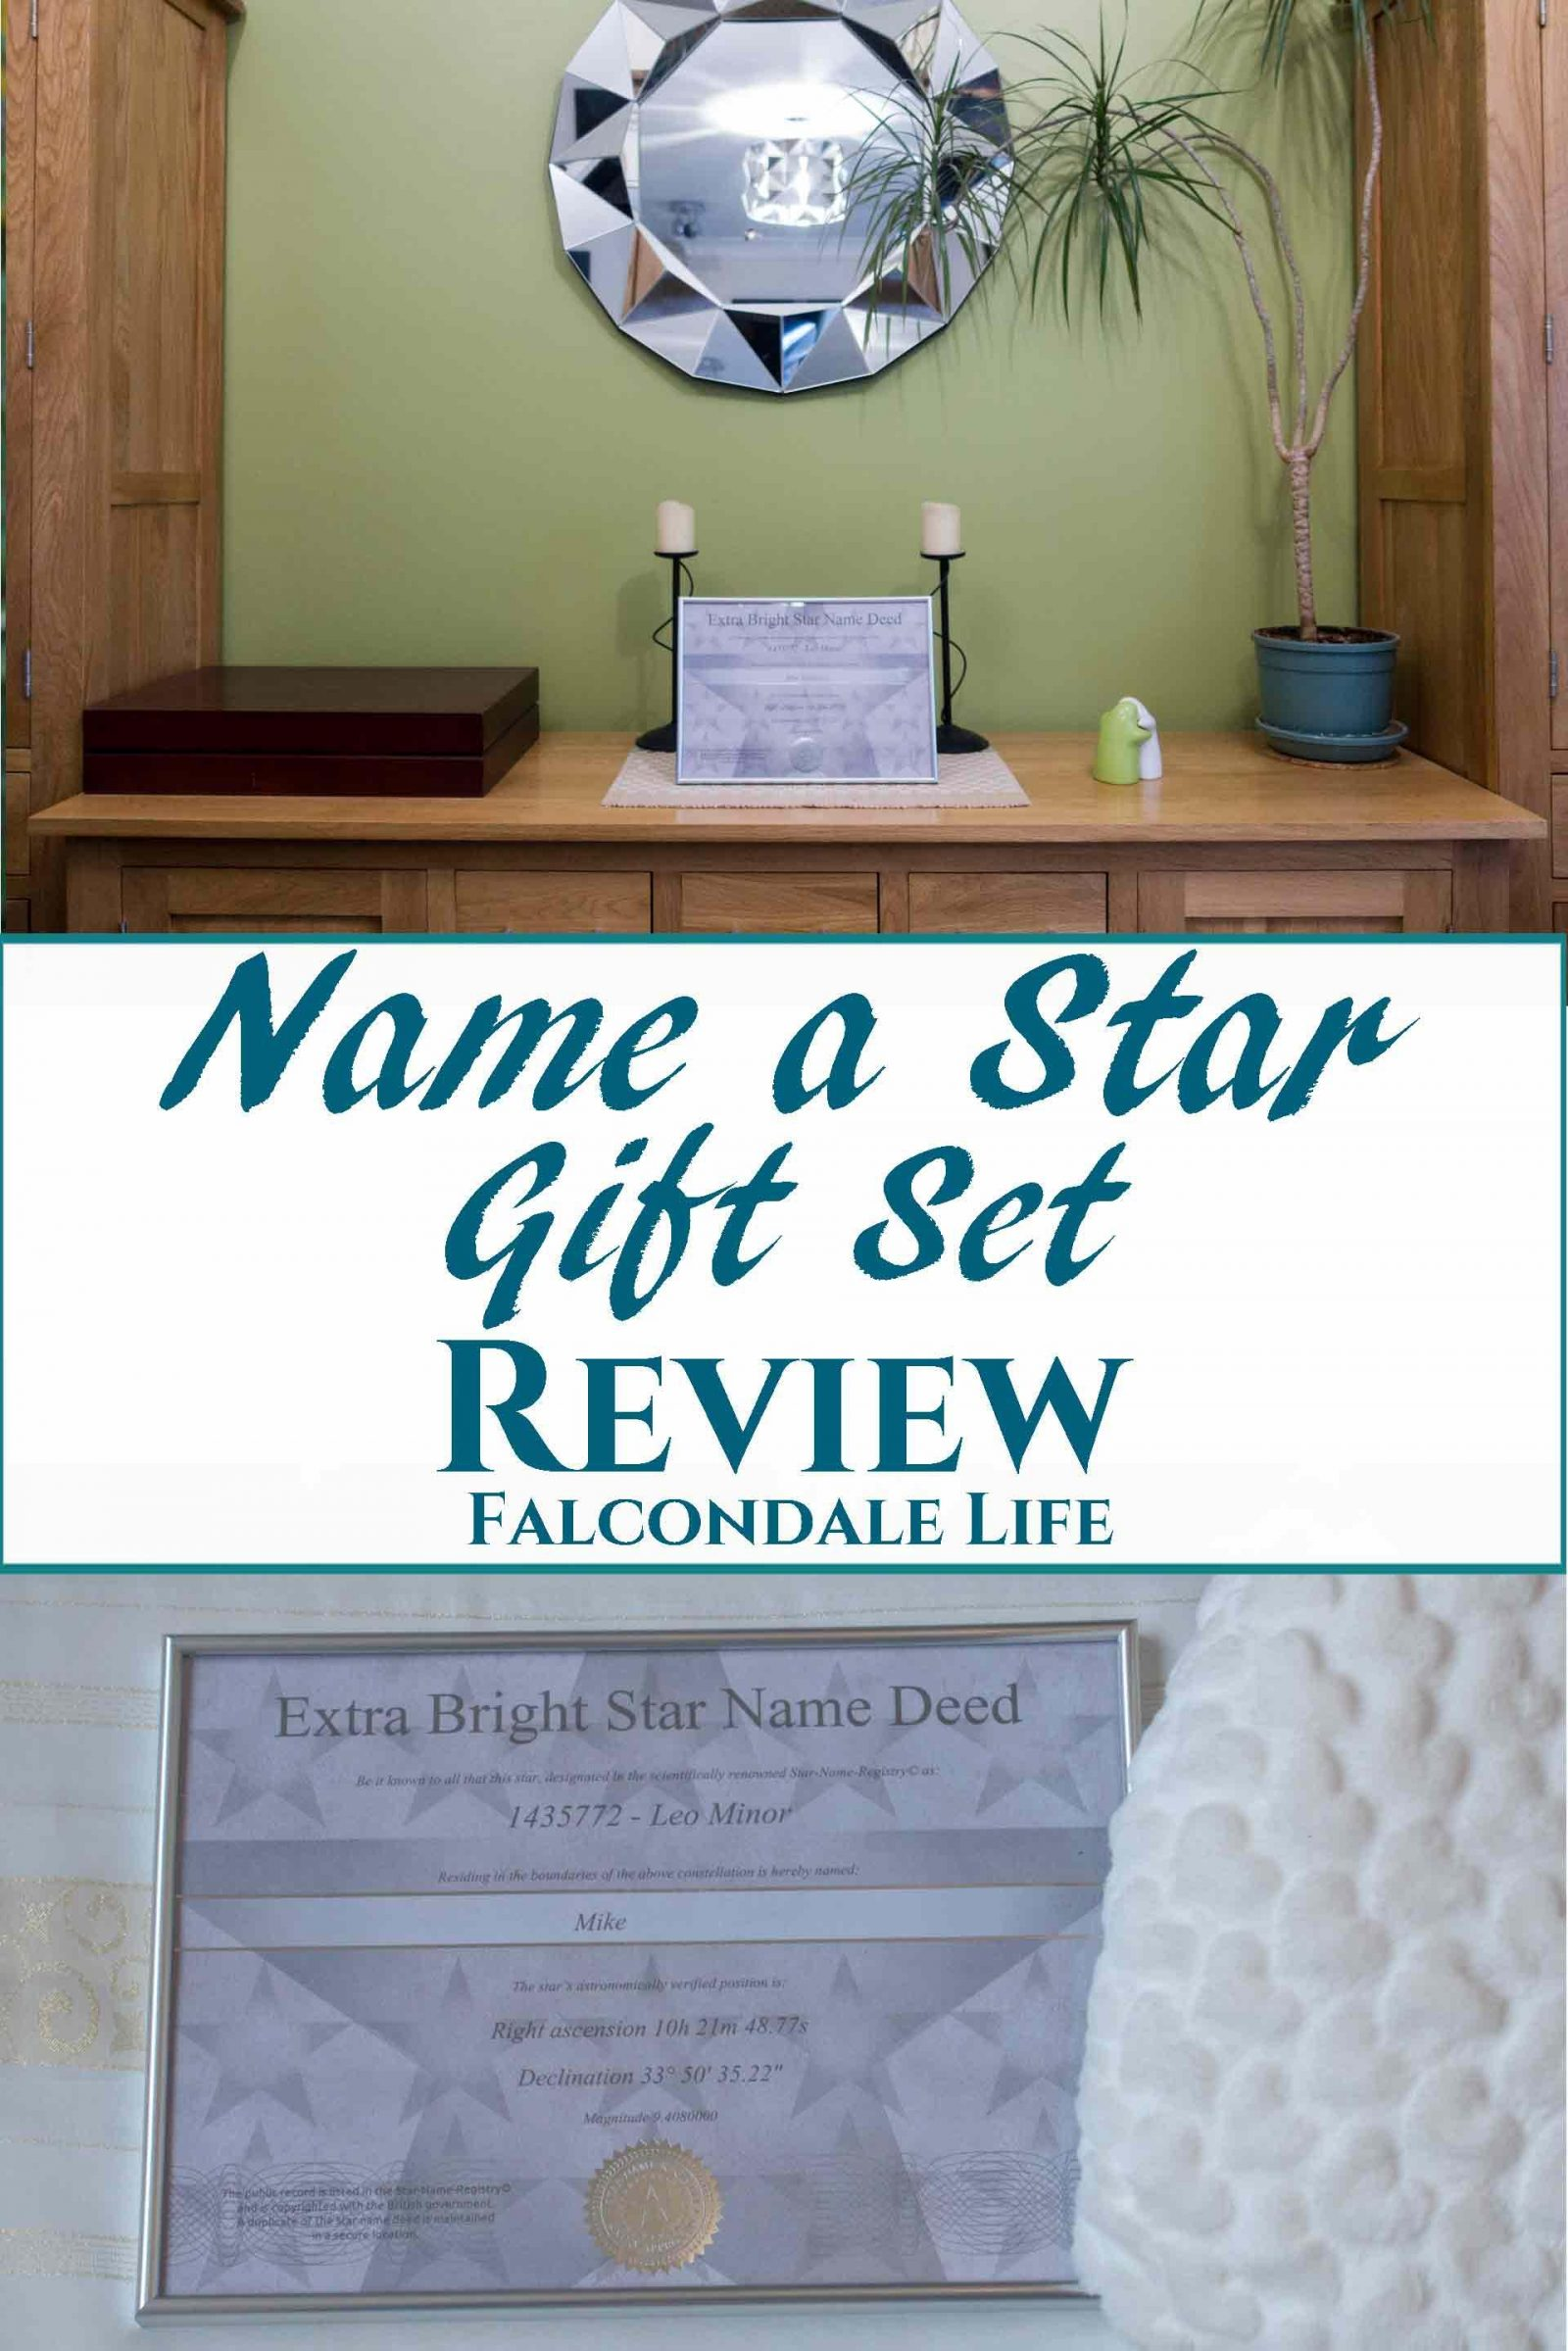 Name a Star Gift Set Review and Giveaway